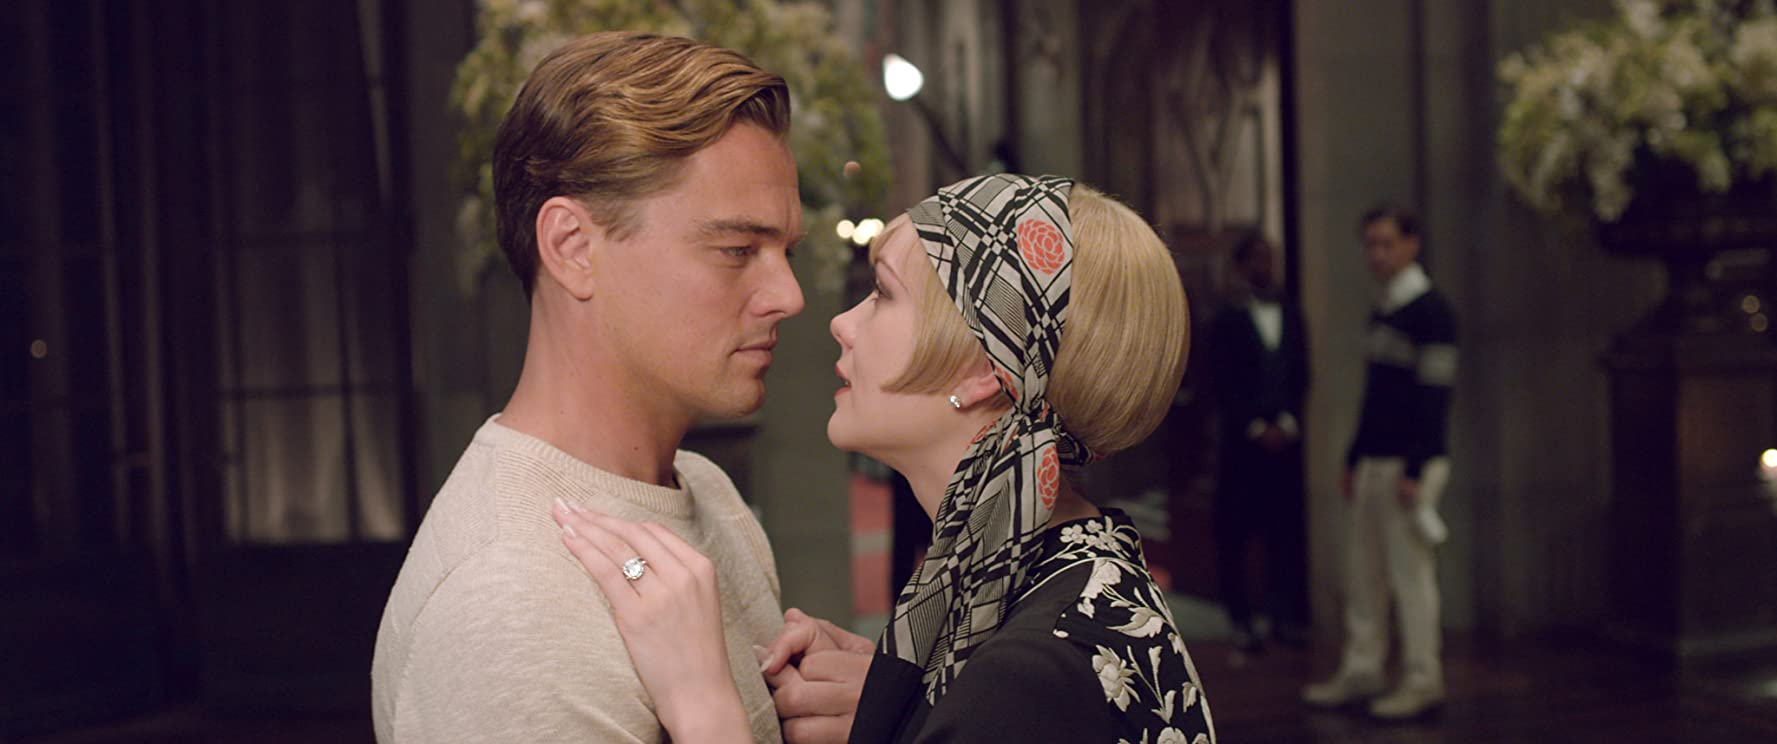 Leonardo DiCaprio, Tobey Maguire, and Carey Mulligan in The Great Gatsby (2013)